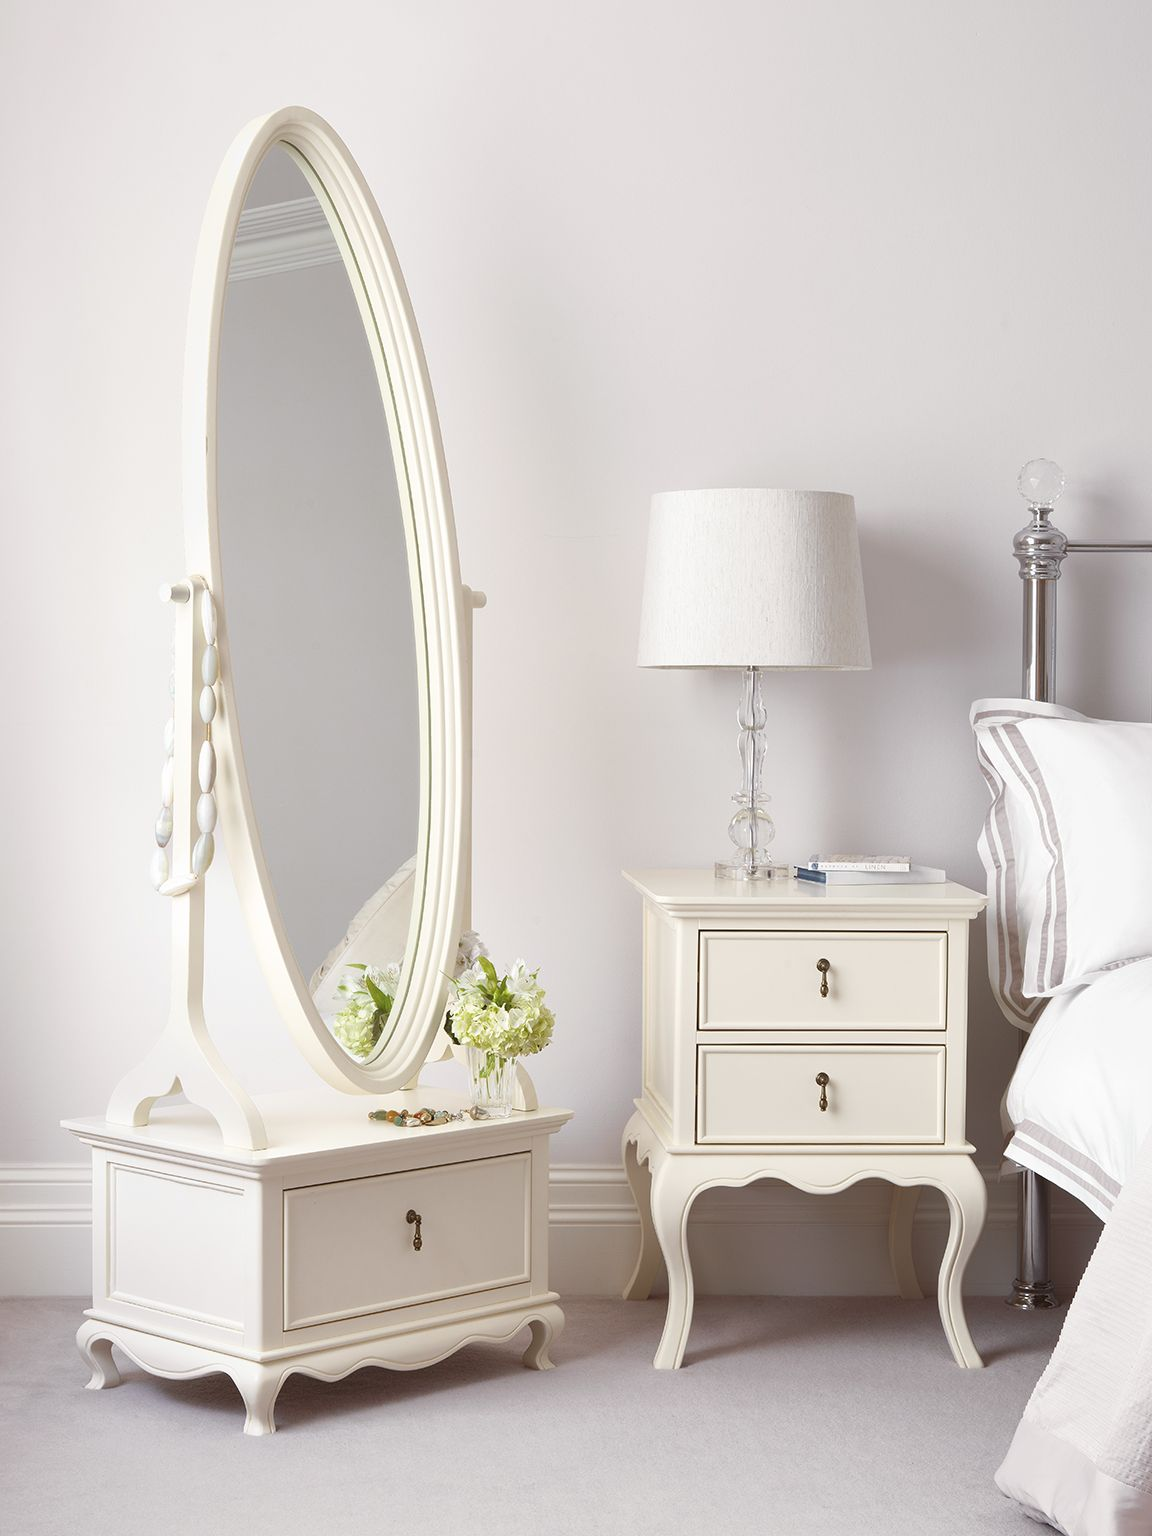 Schreiber Fitted Bedroom Furniture One Of Our Favourite Pieces The Schreiber Longburton Cheval